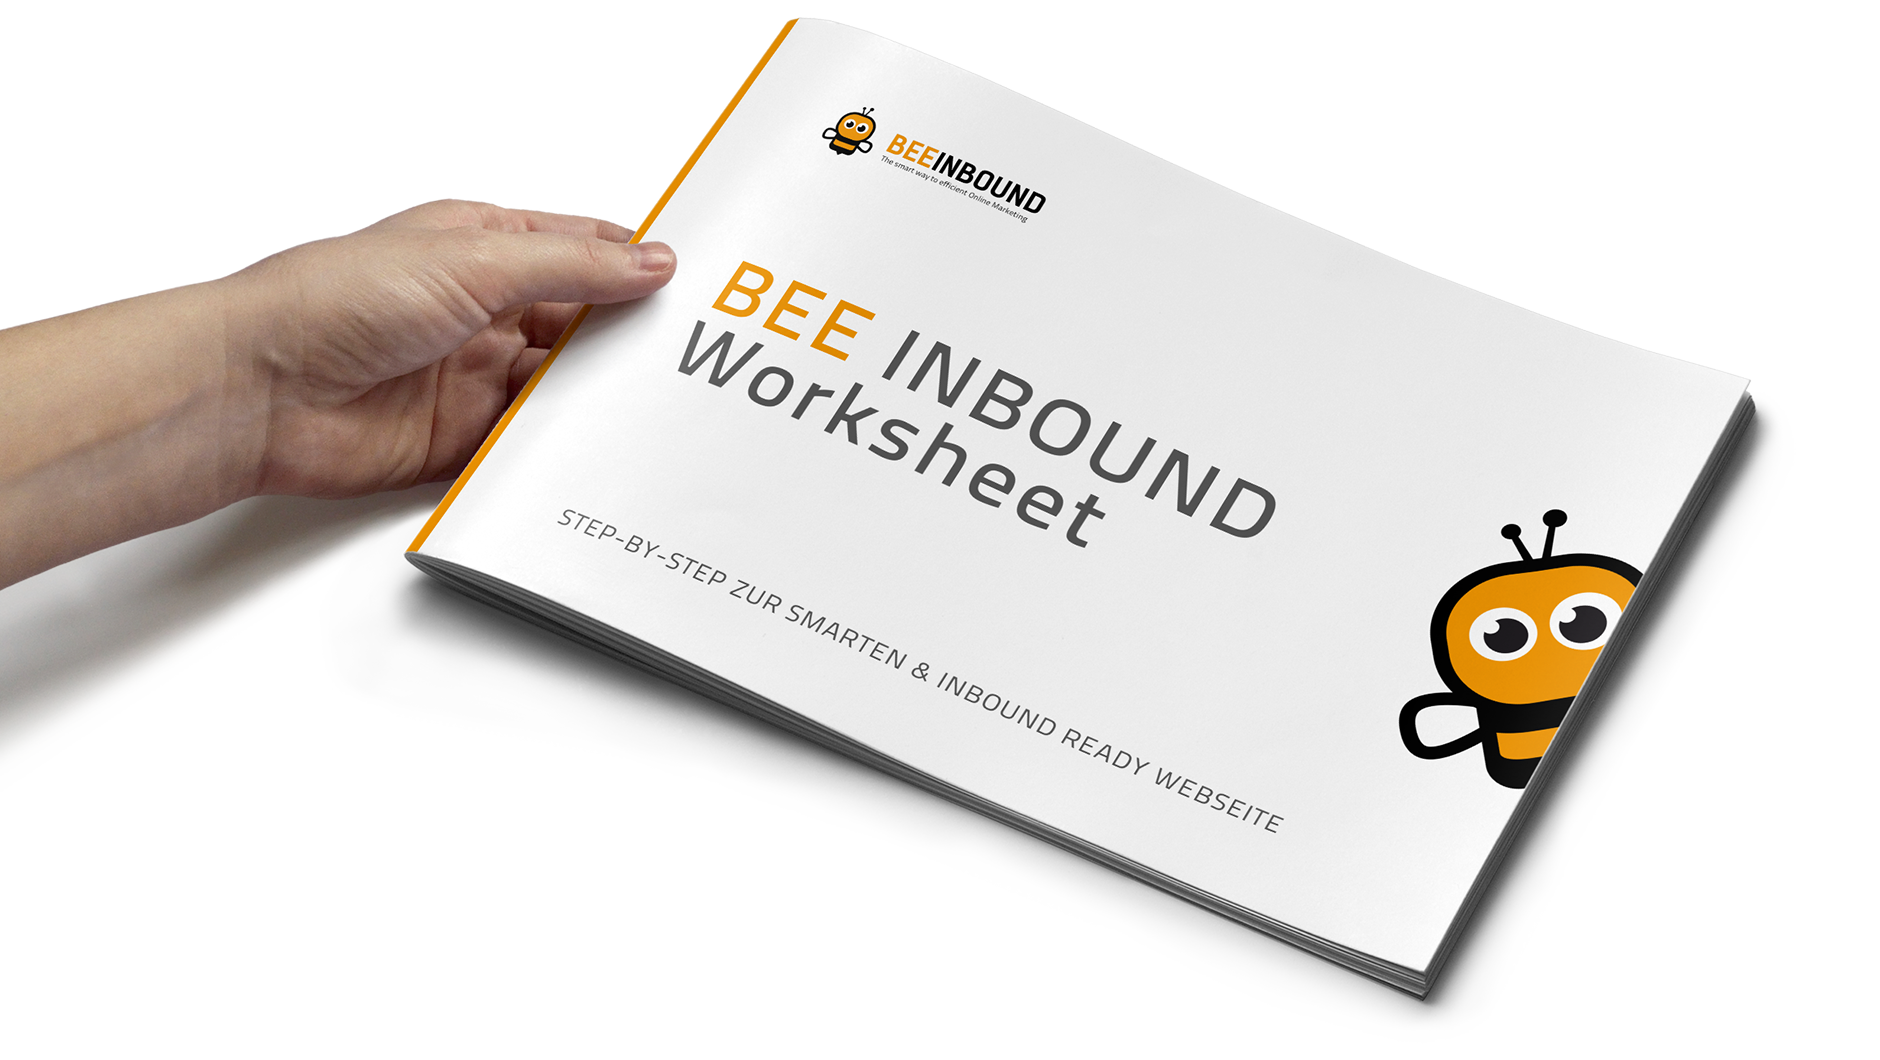 bee-inbound-worksheet-1